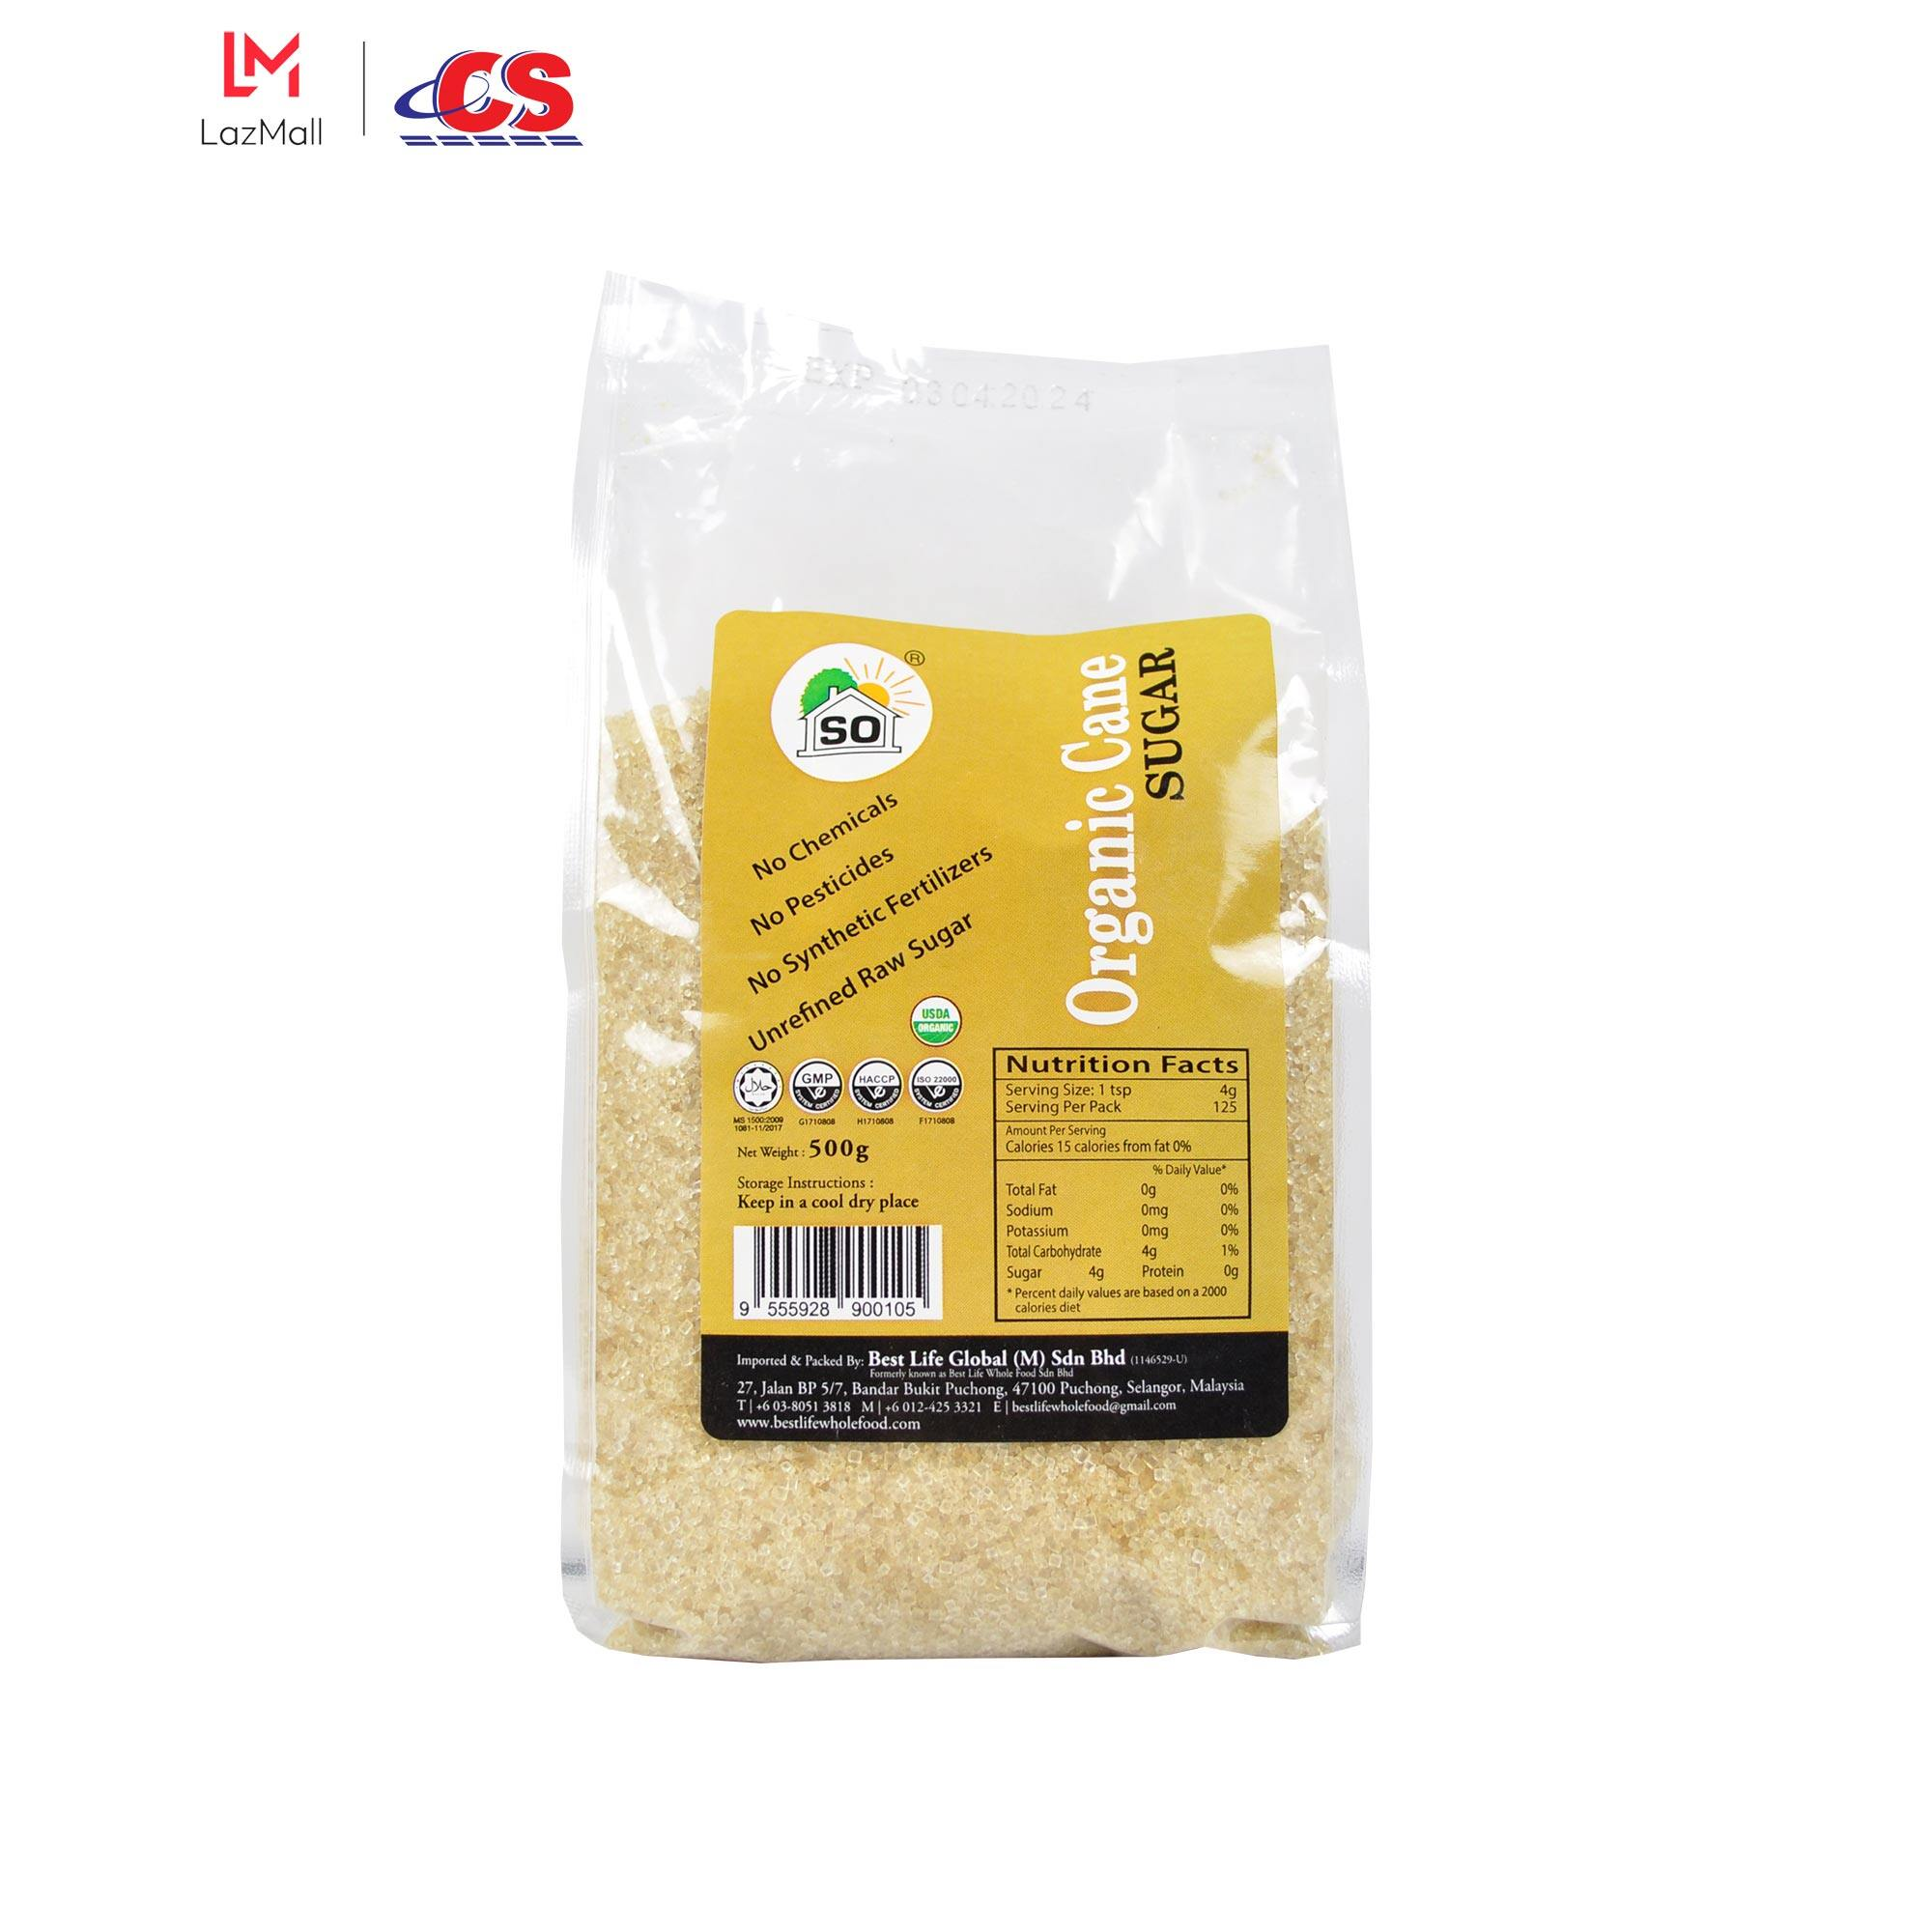 SO Organic Cane Sugar 500 g